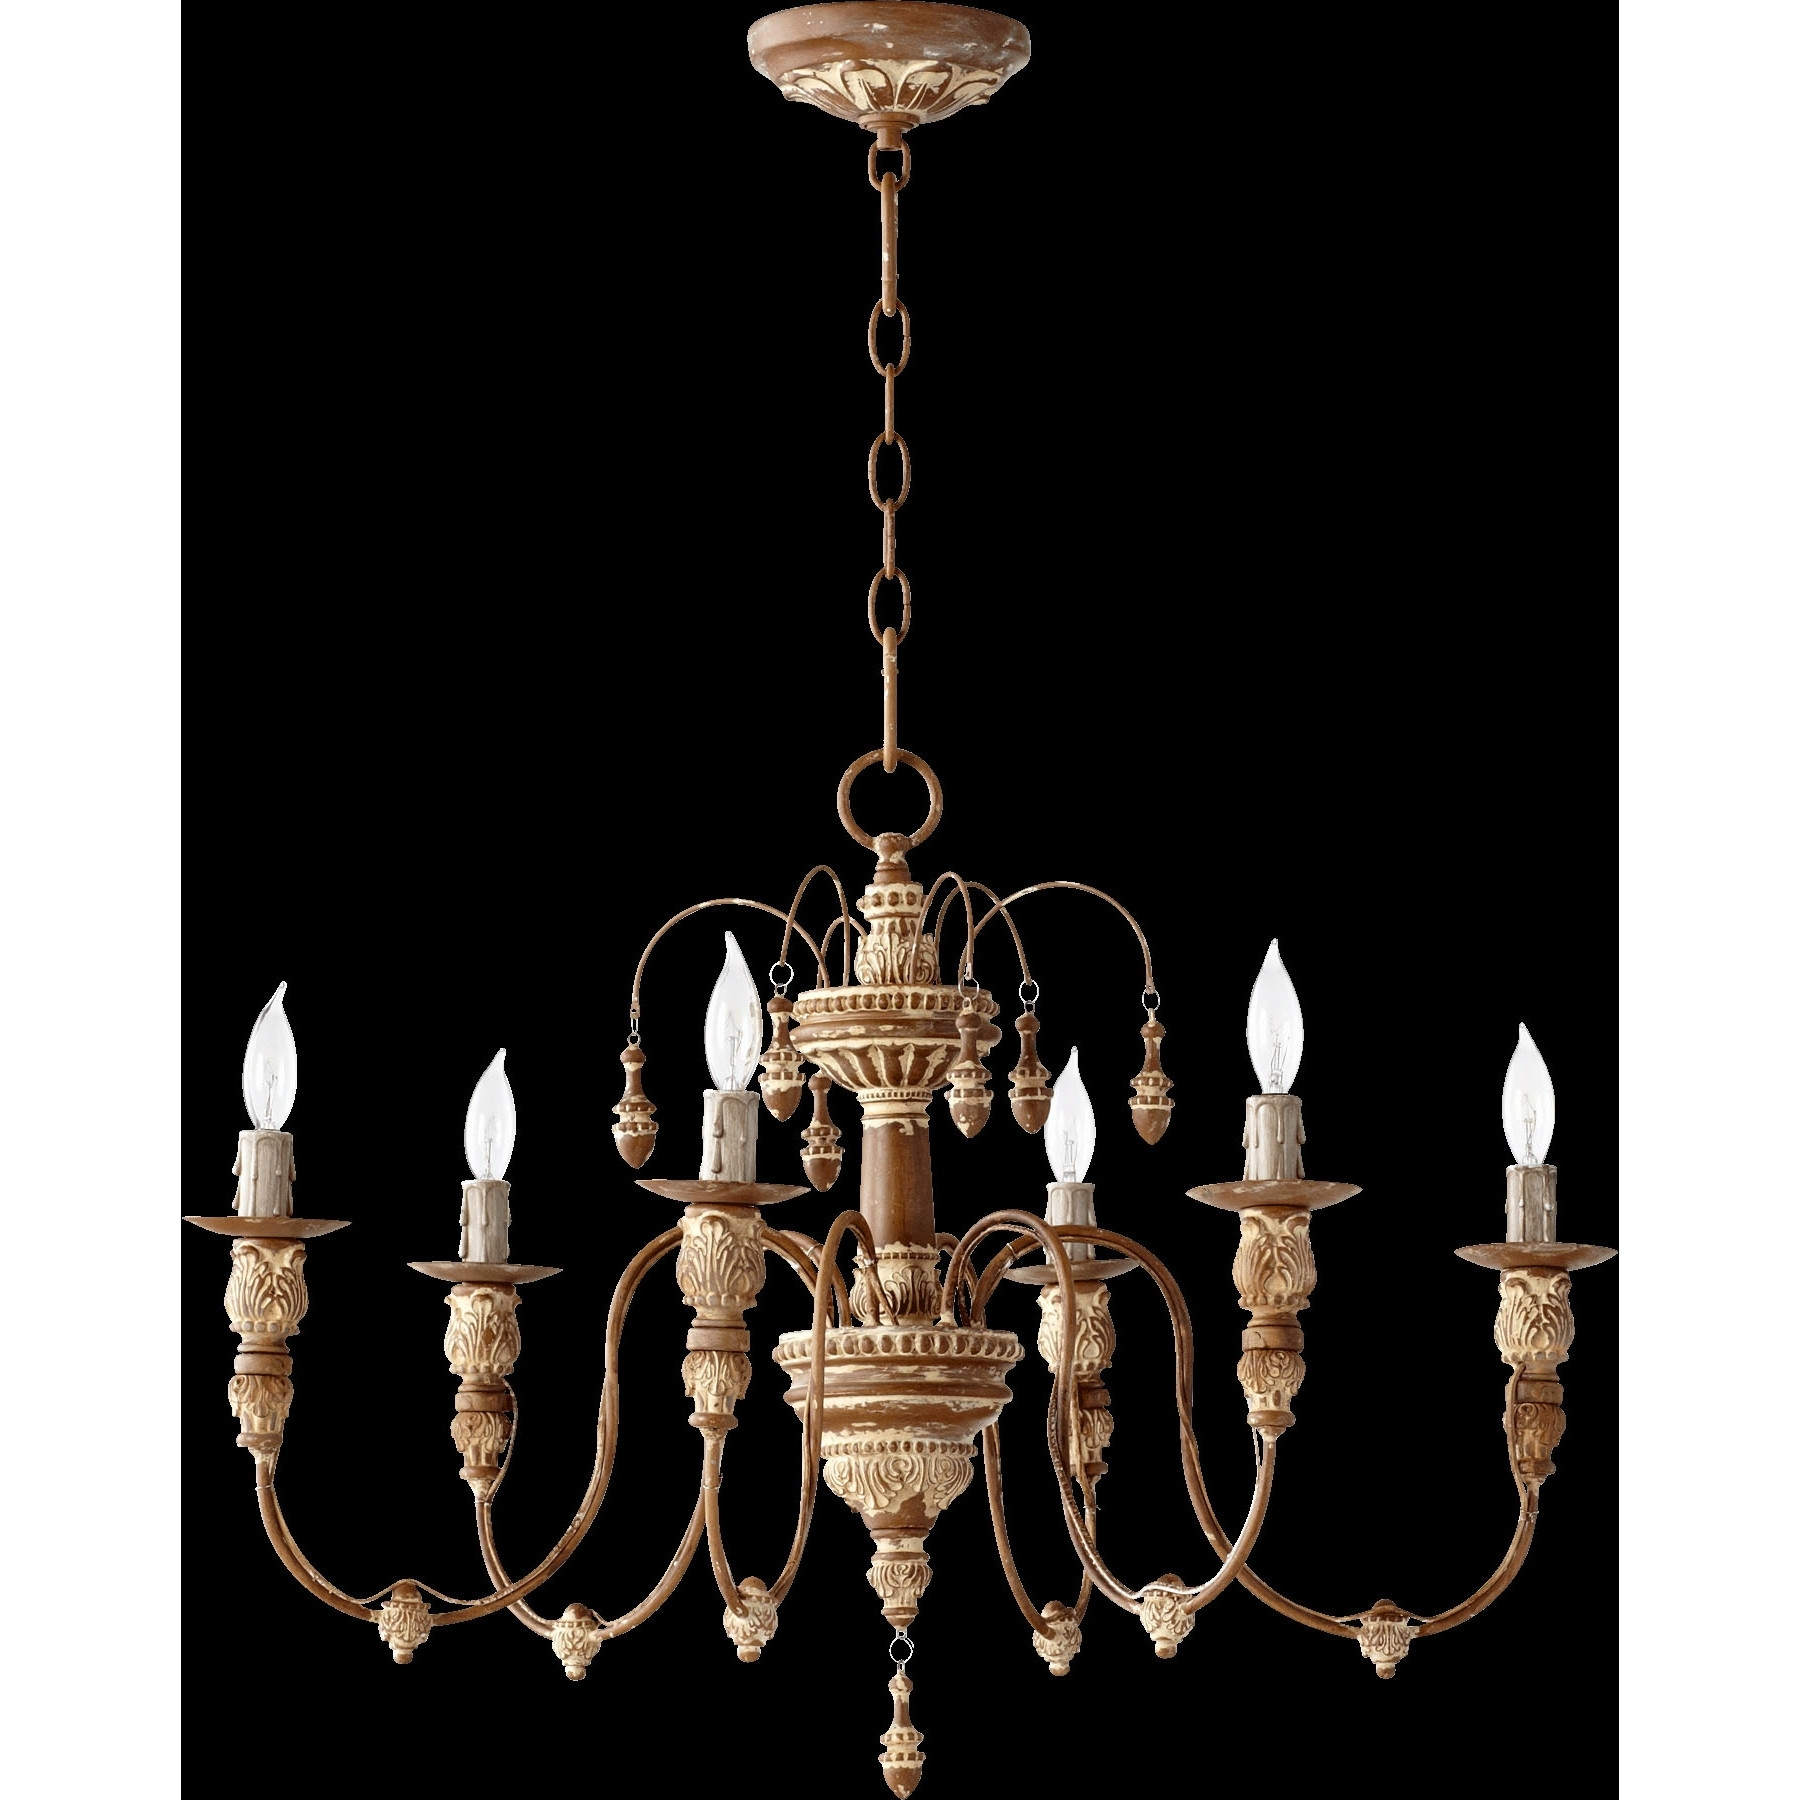 Wayfair Chandeliers Intended For Favorite Chandeliers : Wayfair Chandeliers Awesome Lighting Lamps Traditional (View 12 of 15)